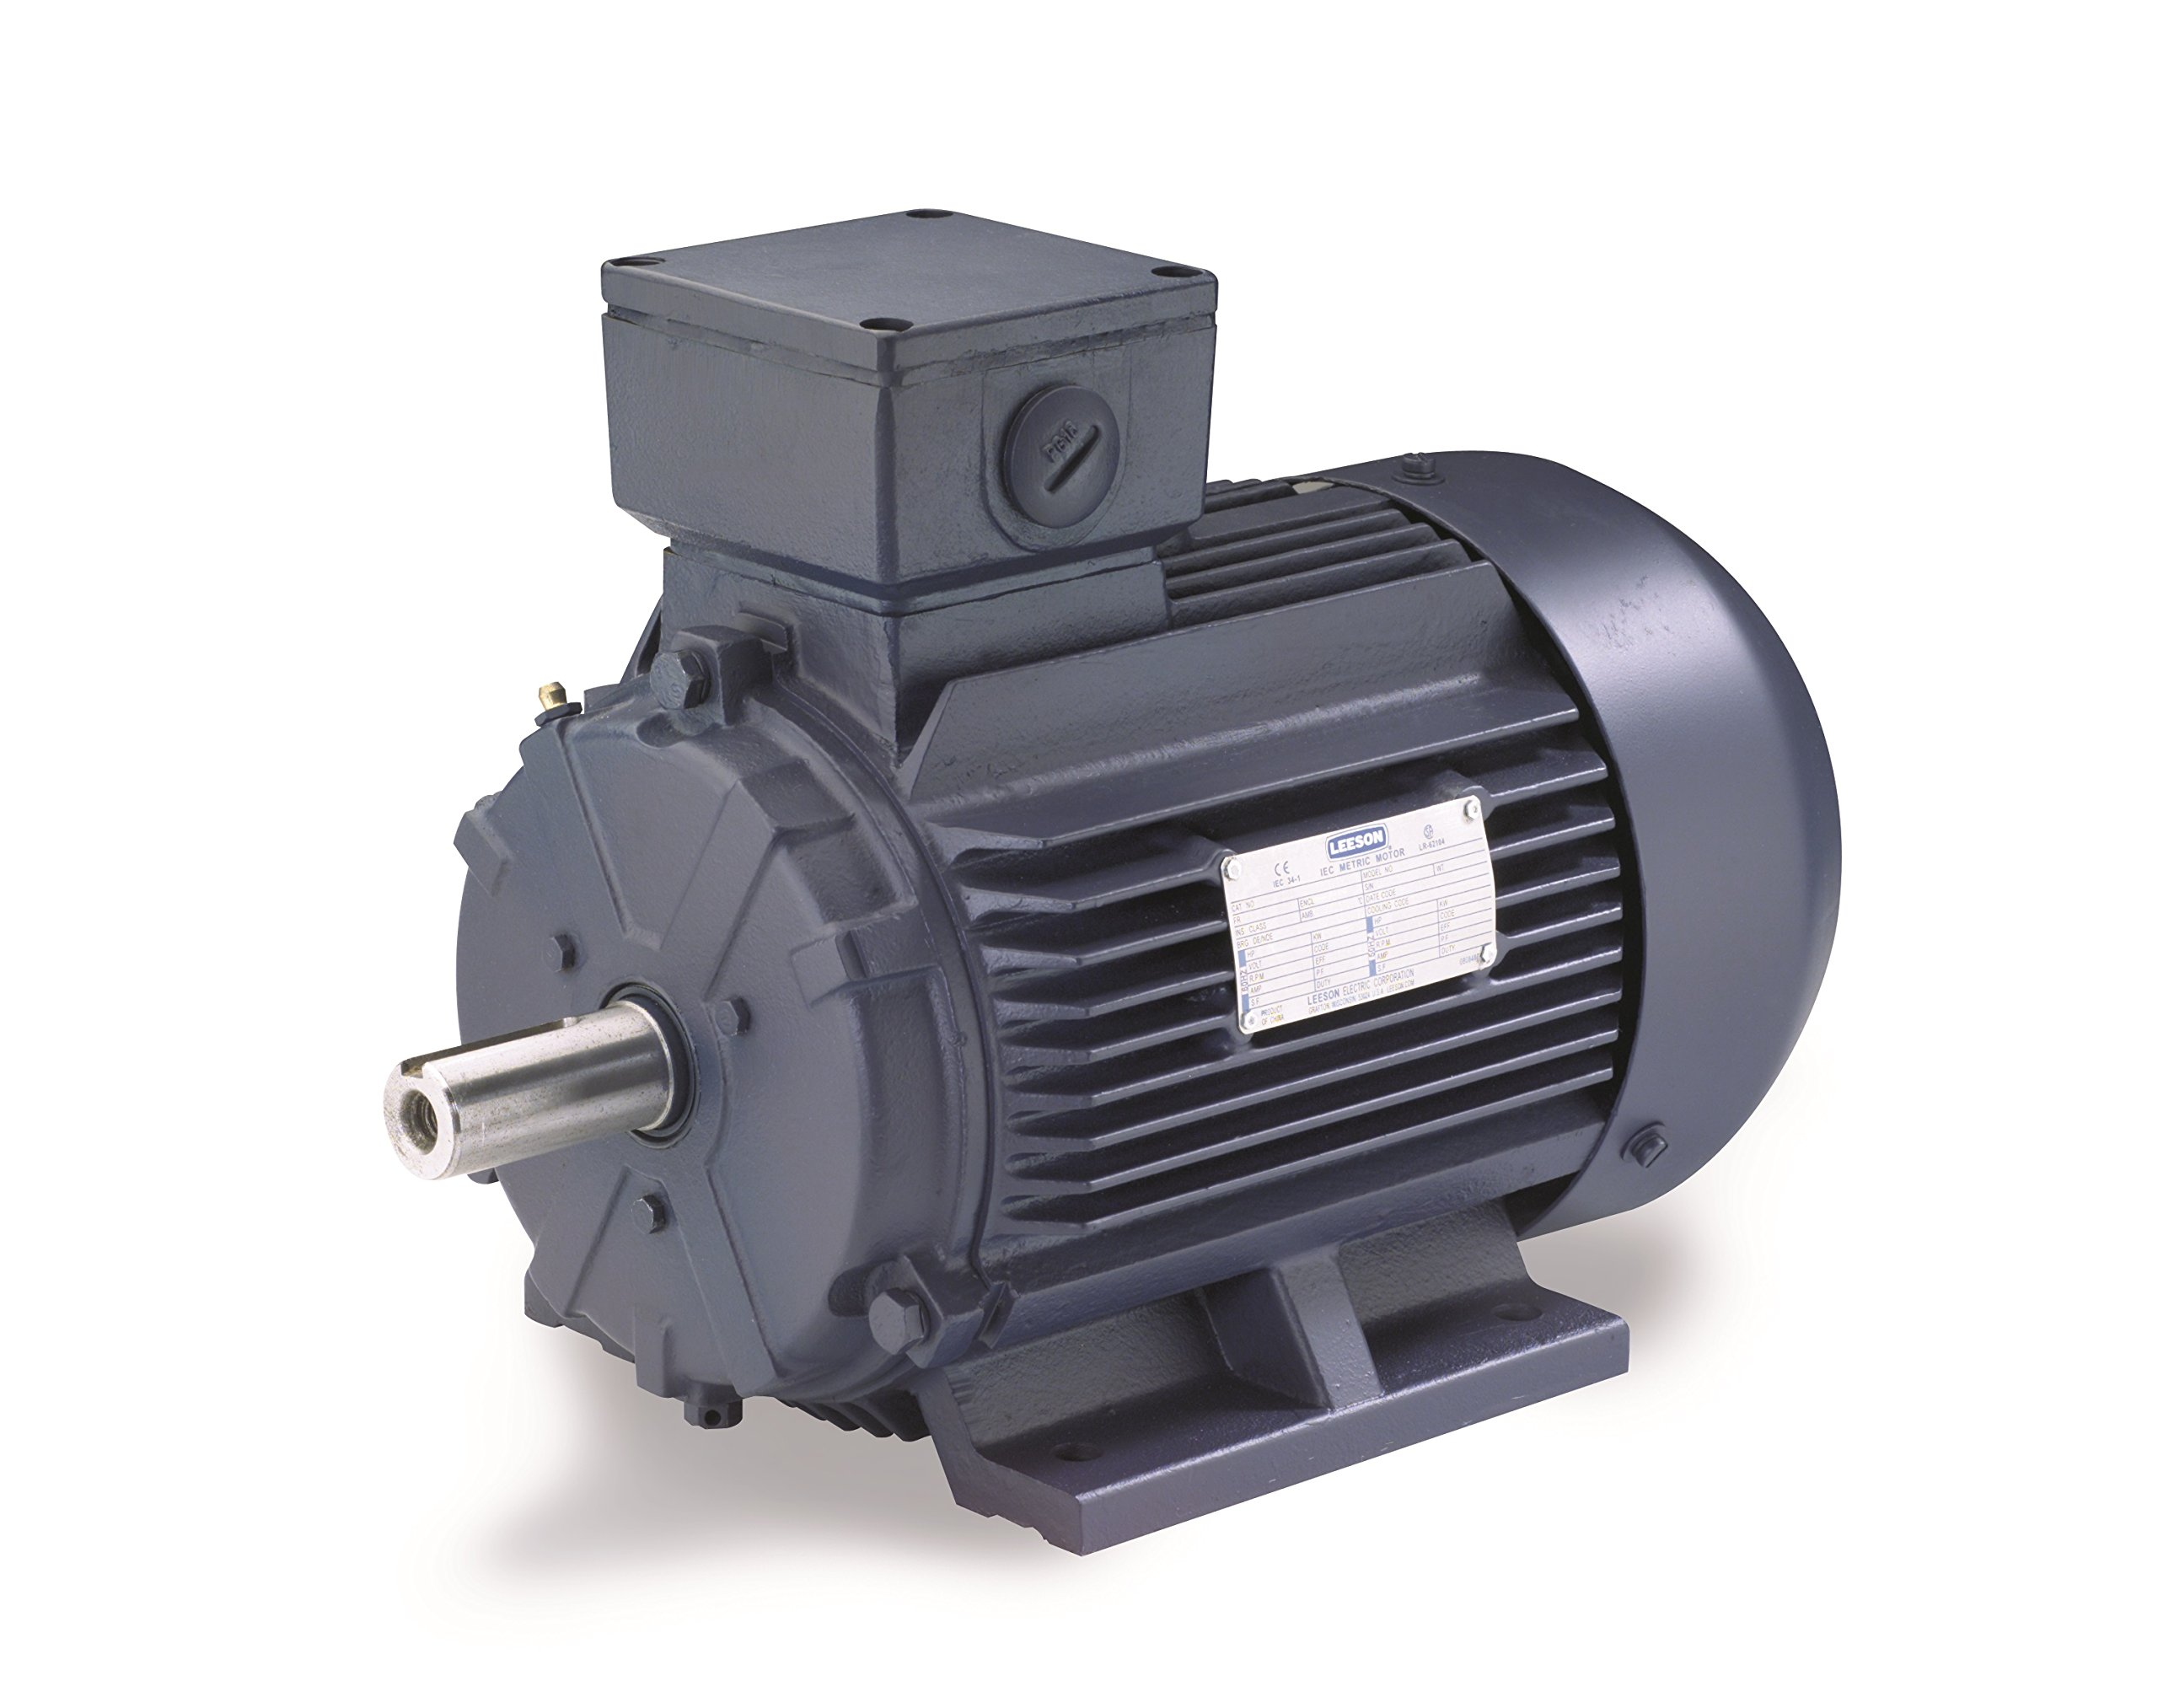 Leeson 193379.60 Rigid Base IEC Metric Motor, 3 Phase, 100L Frame, Rigid Mounting, 3HP, 1800 RPM, 575V Voltage, 60Hz Fequency